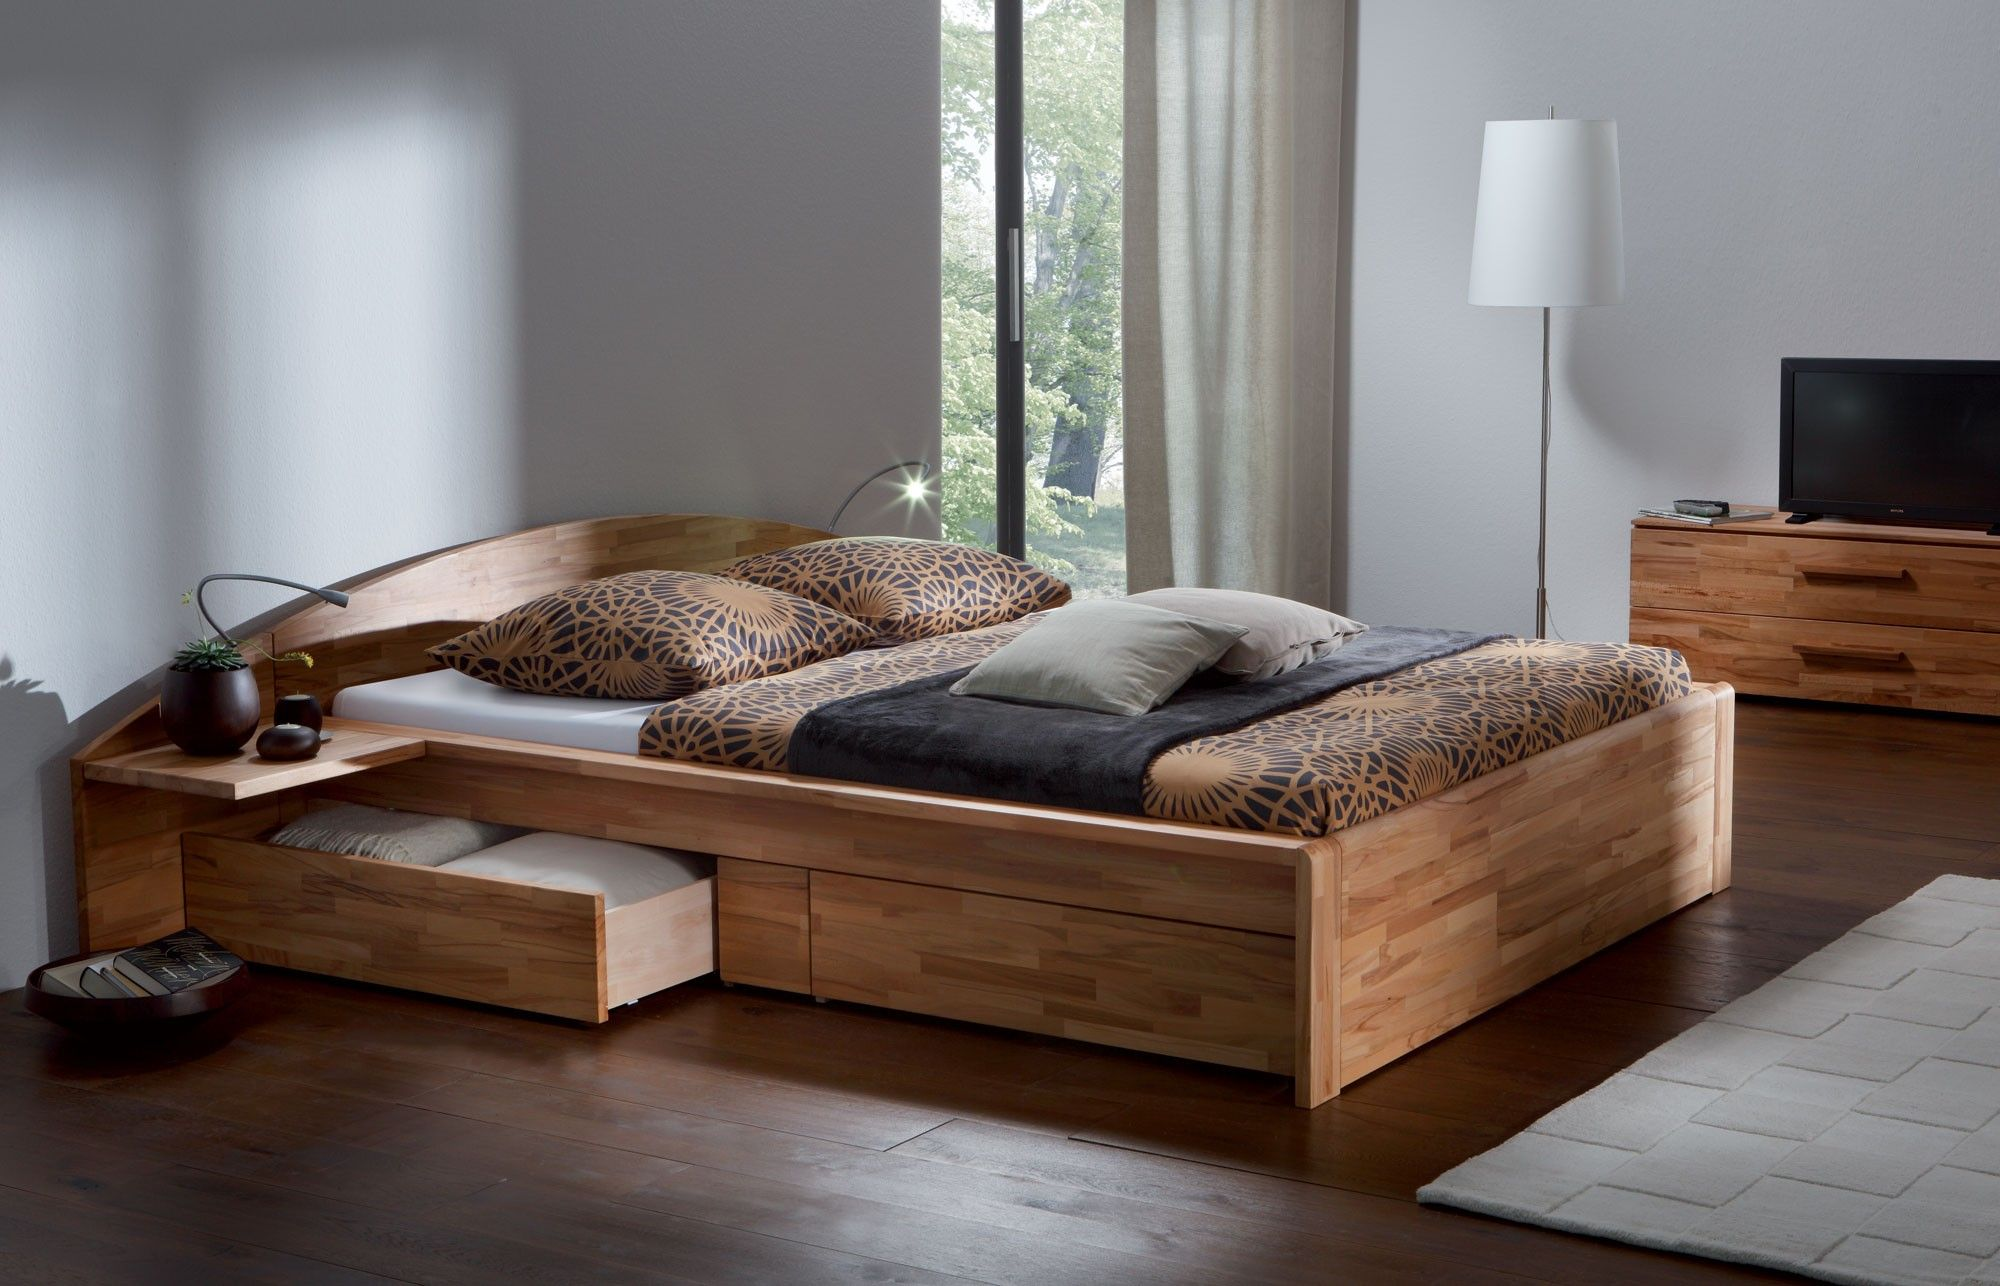 Wooden Beds With Storage ~ Solid heartbeech natural oiled wooden bed eg